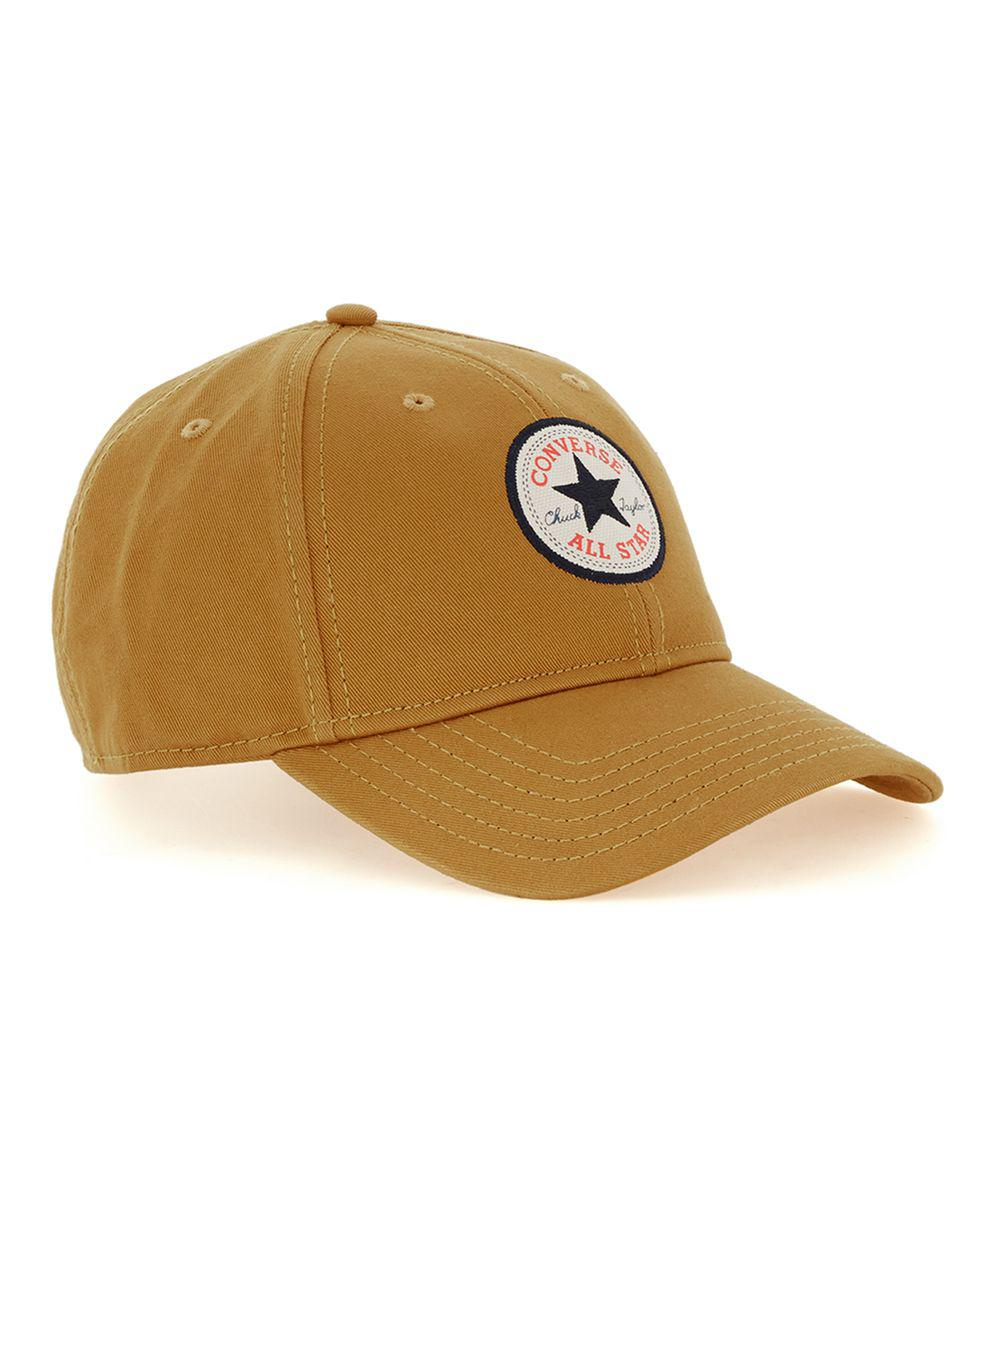 a3b8d888f74 Converse Converse Mustard Curved Peak Cap in Yellow for Men - Lyst